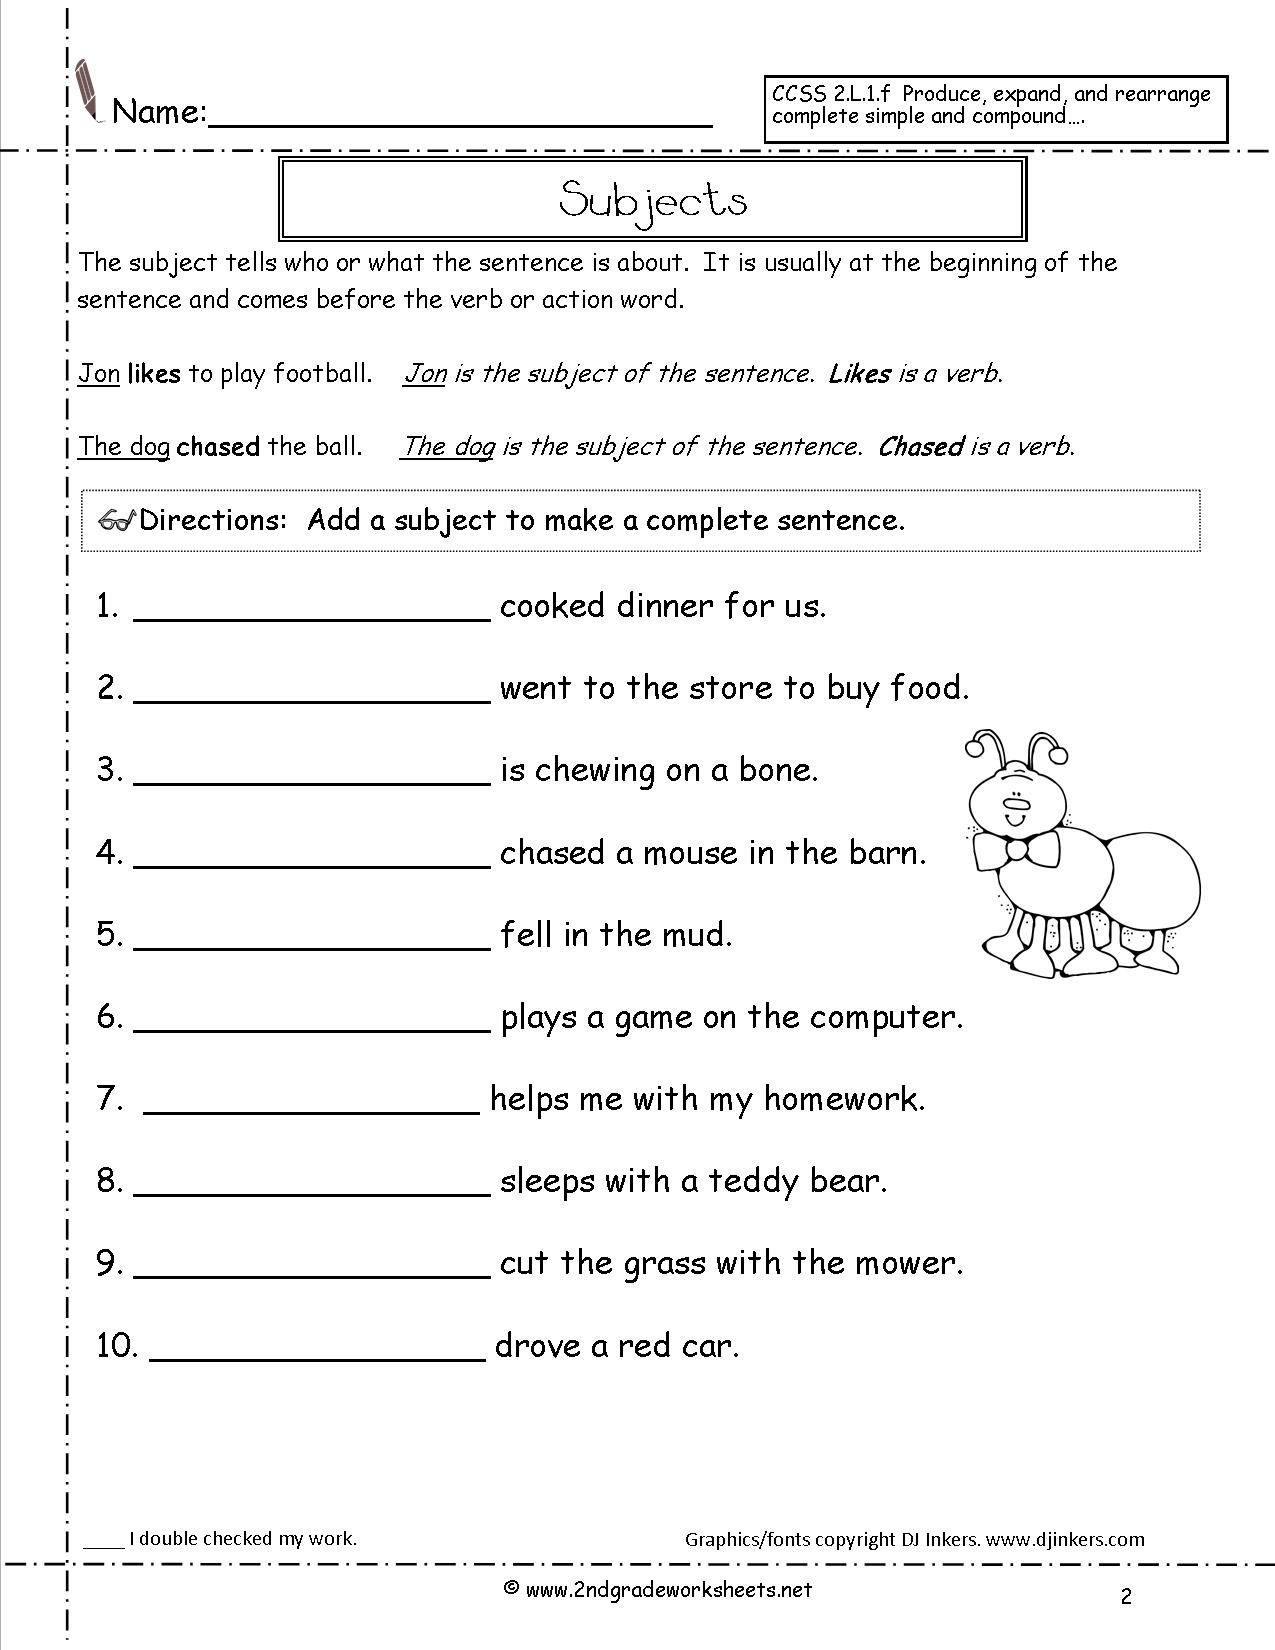 Free Printable Sentence Writing Worksheets Basic Math Words Printable Cursive Worksheets 3rd Grade